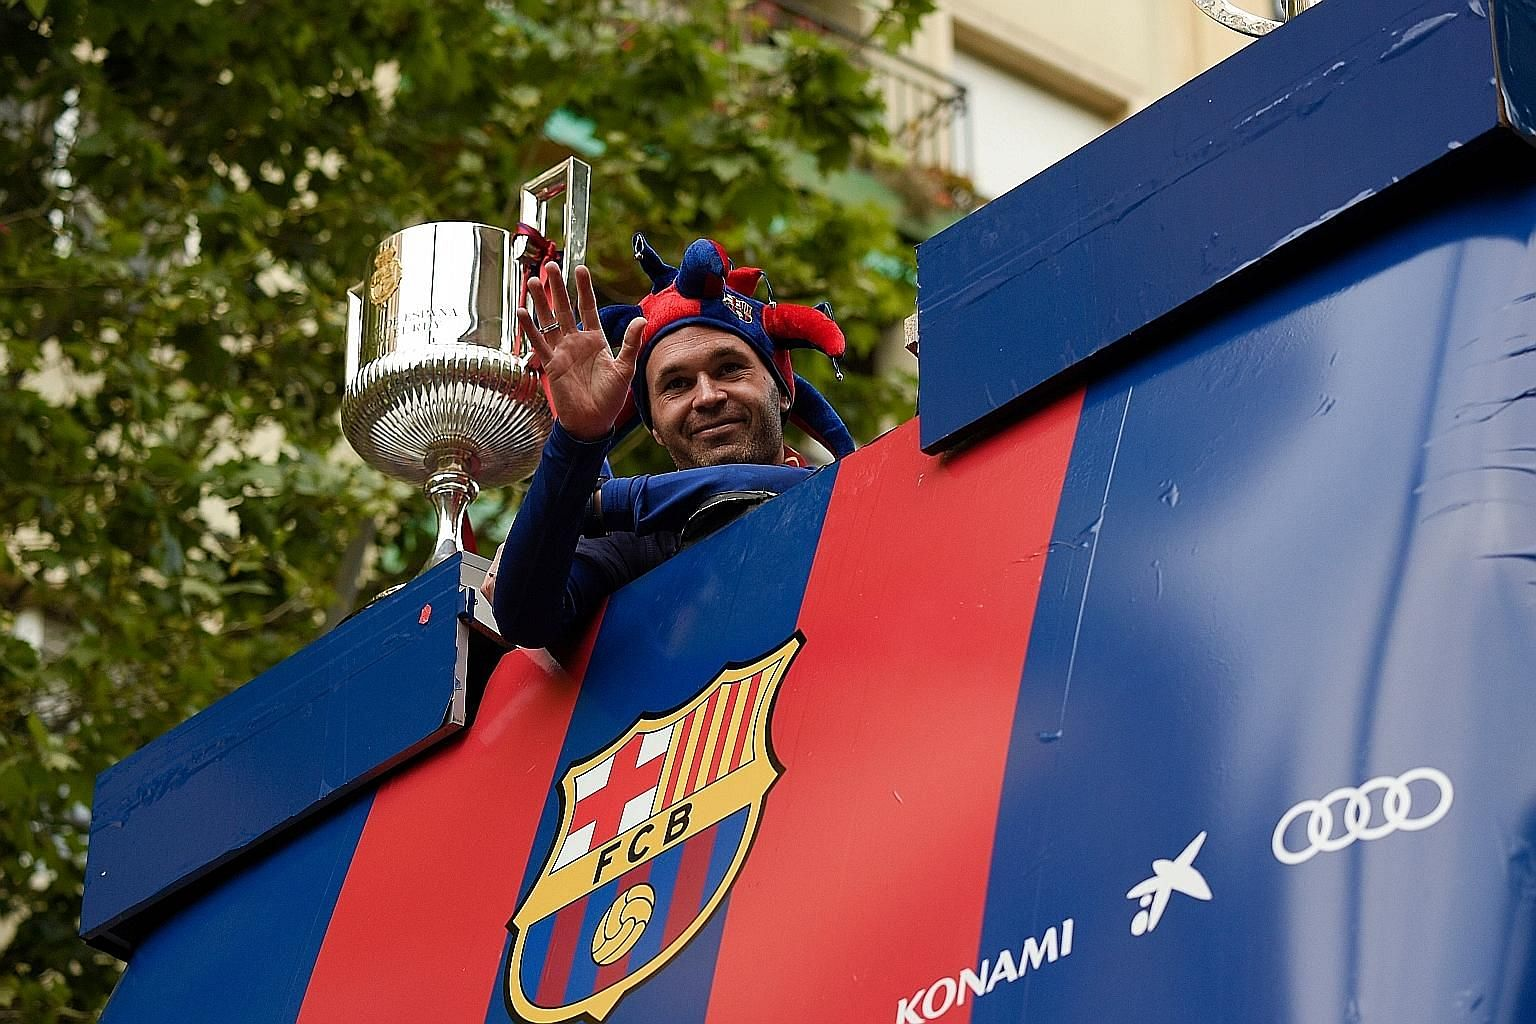 Andres Iniesta waving from an open-top bus during Barcelona's parade to celebrate their 25th La Liga title on Monday. The 34-year-old midfielder is leaving his only club at the end of the season and will have no shortage of suitors from outside Europ